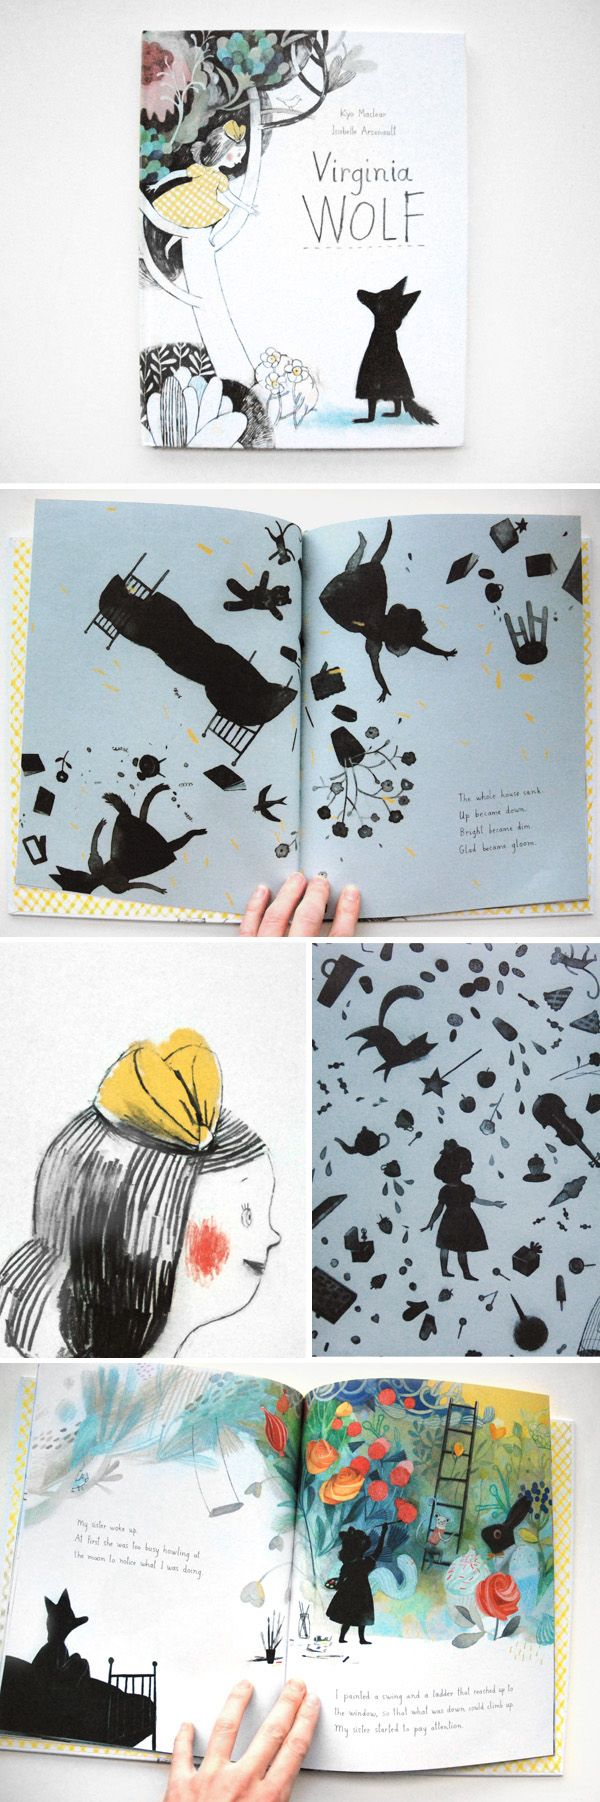 "On my wishlist: ""Virginia Wolf"", written by Kyo Maclear, illustrated by Isabelle Arsenault: Books Kids, Children Illustrations, Virginia Wolf, Children Books Illustrations, Children Books Design, Kids Illustrations Books, Illustrations Kids Books, Kids Books Illustrations, Beautiful Illustrations"